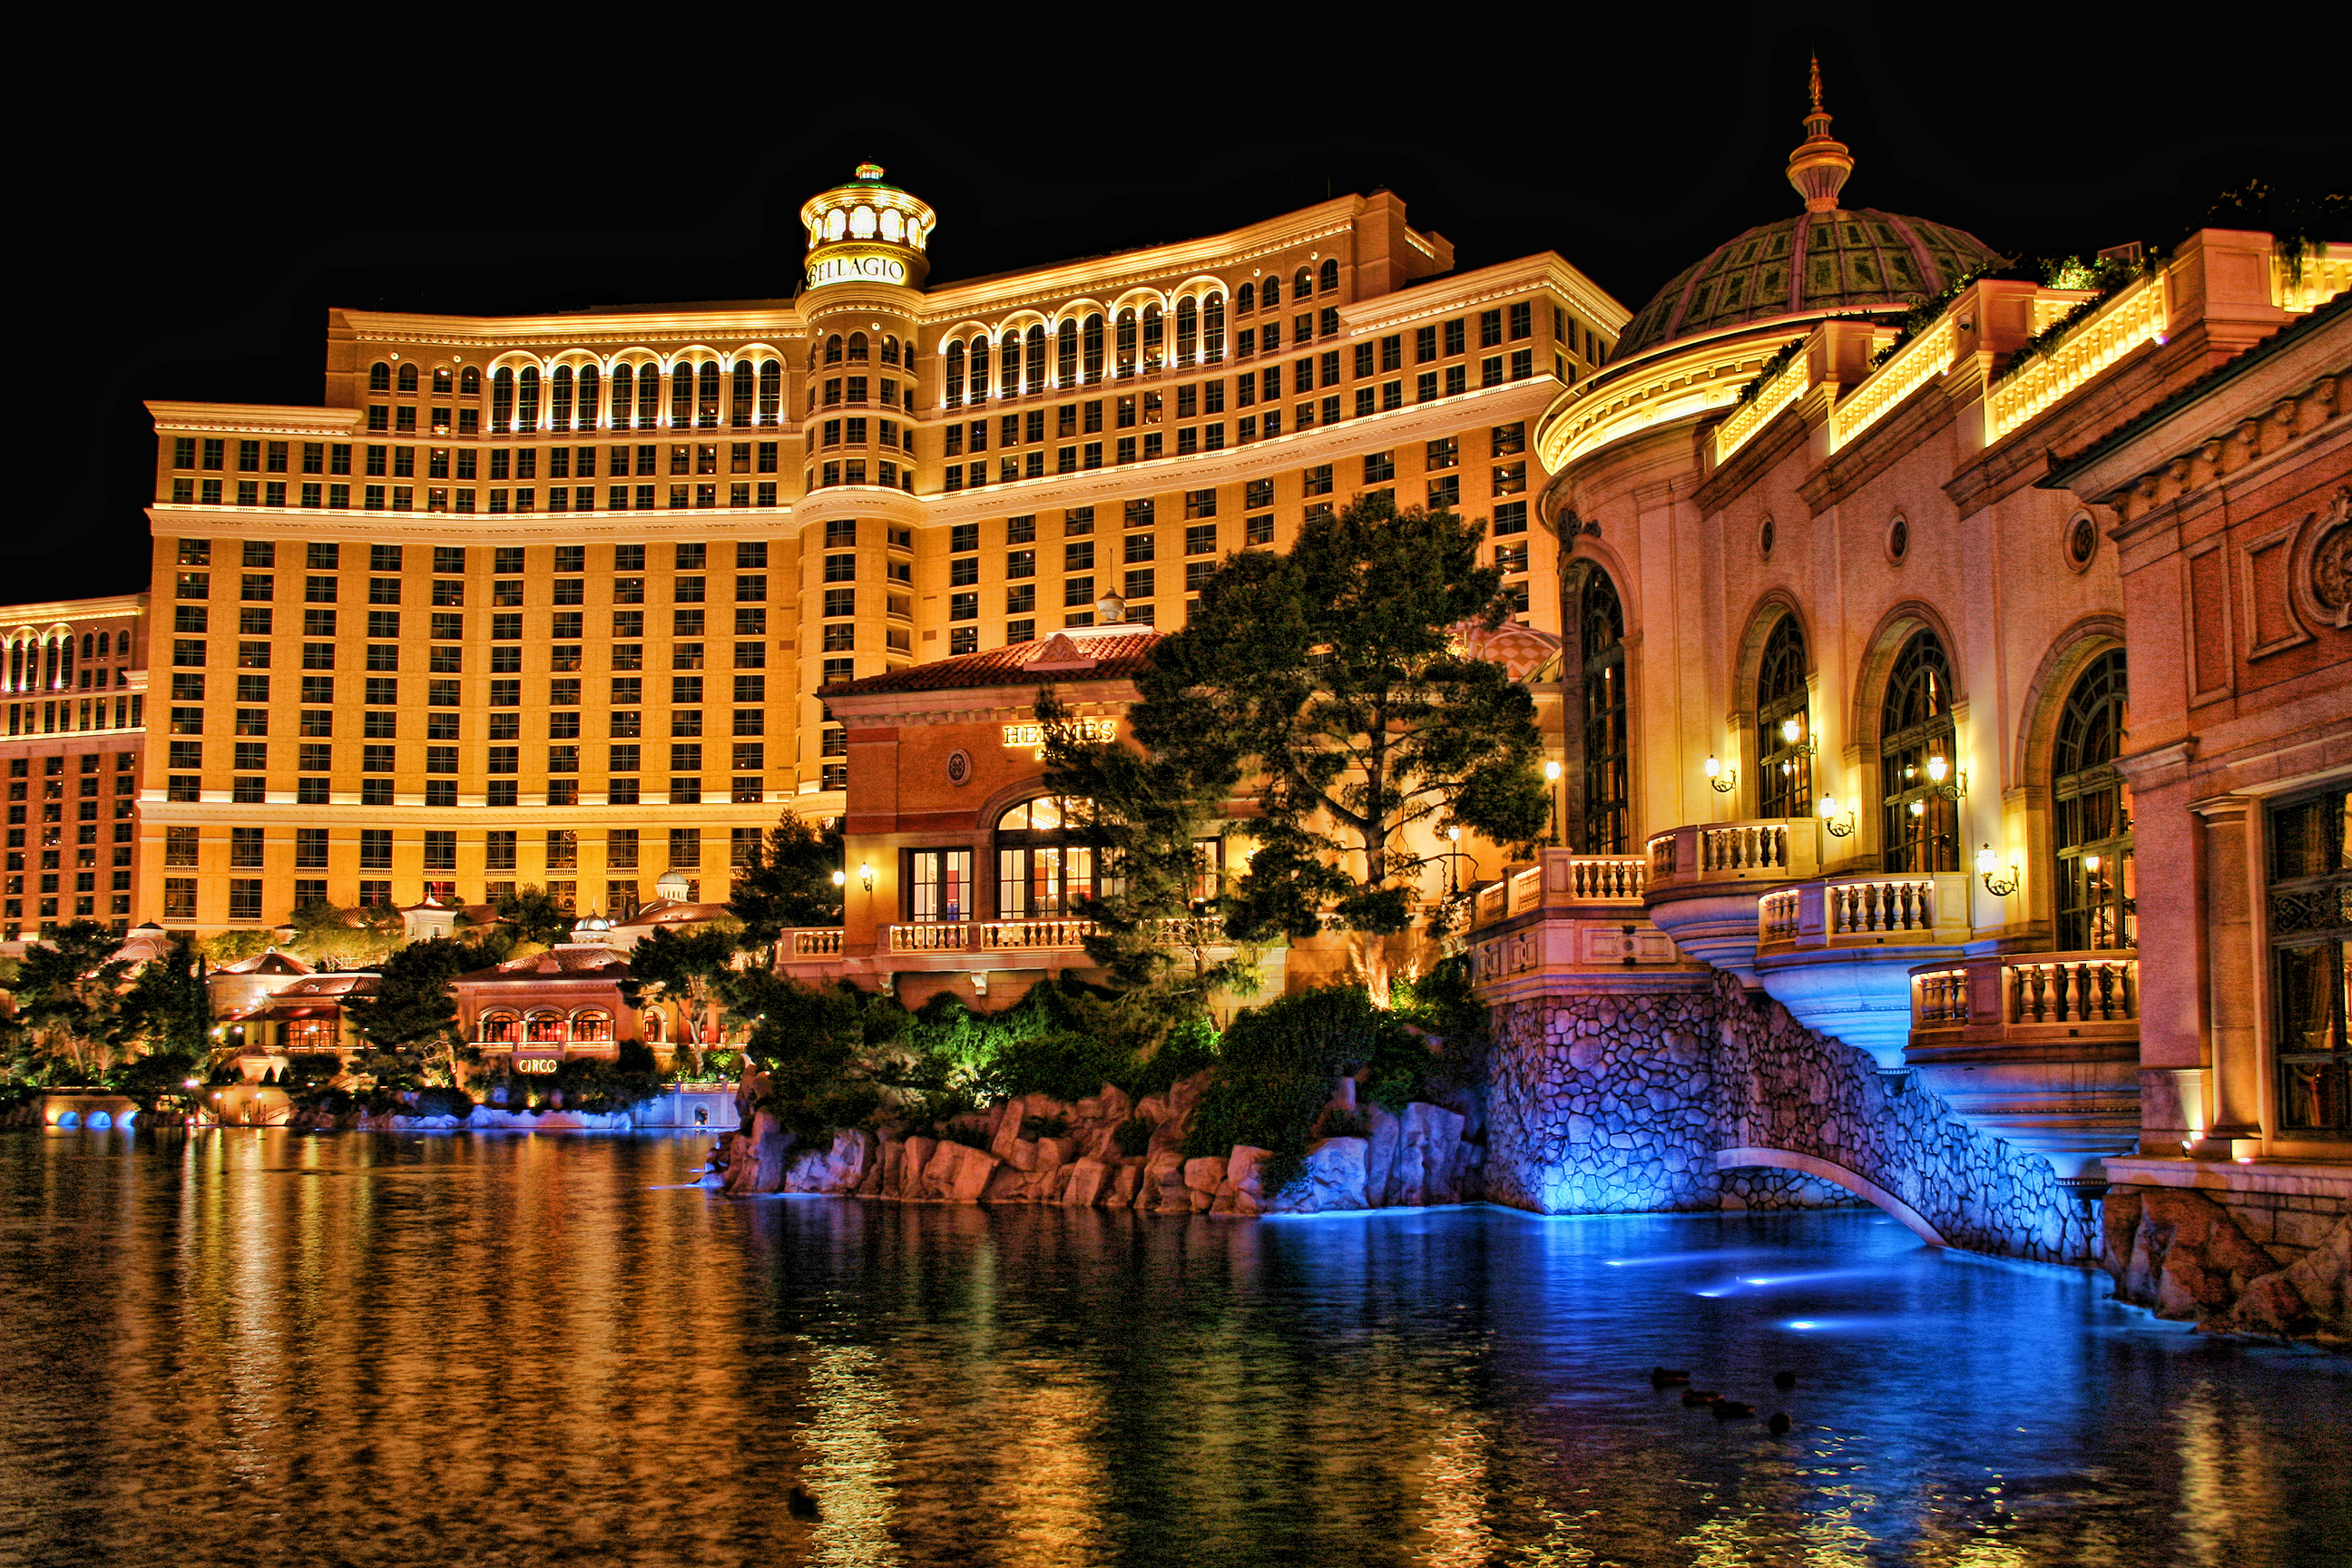 Bellagio Casino and Hotel